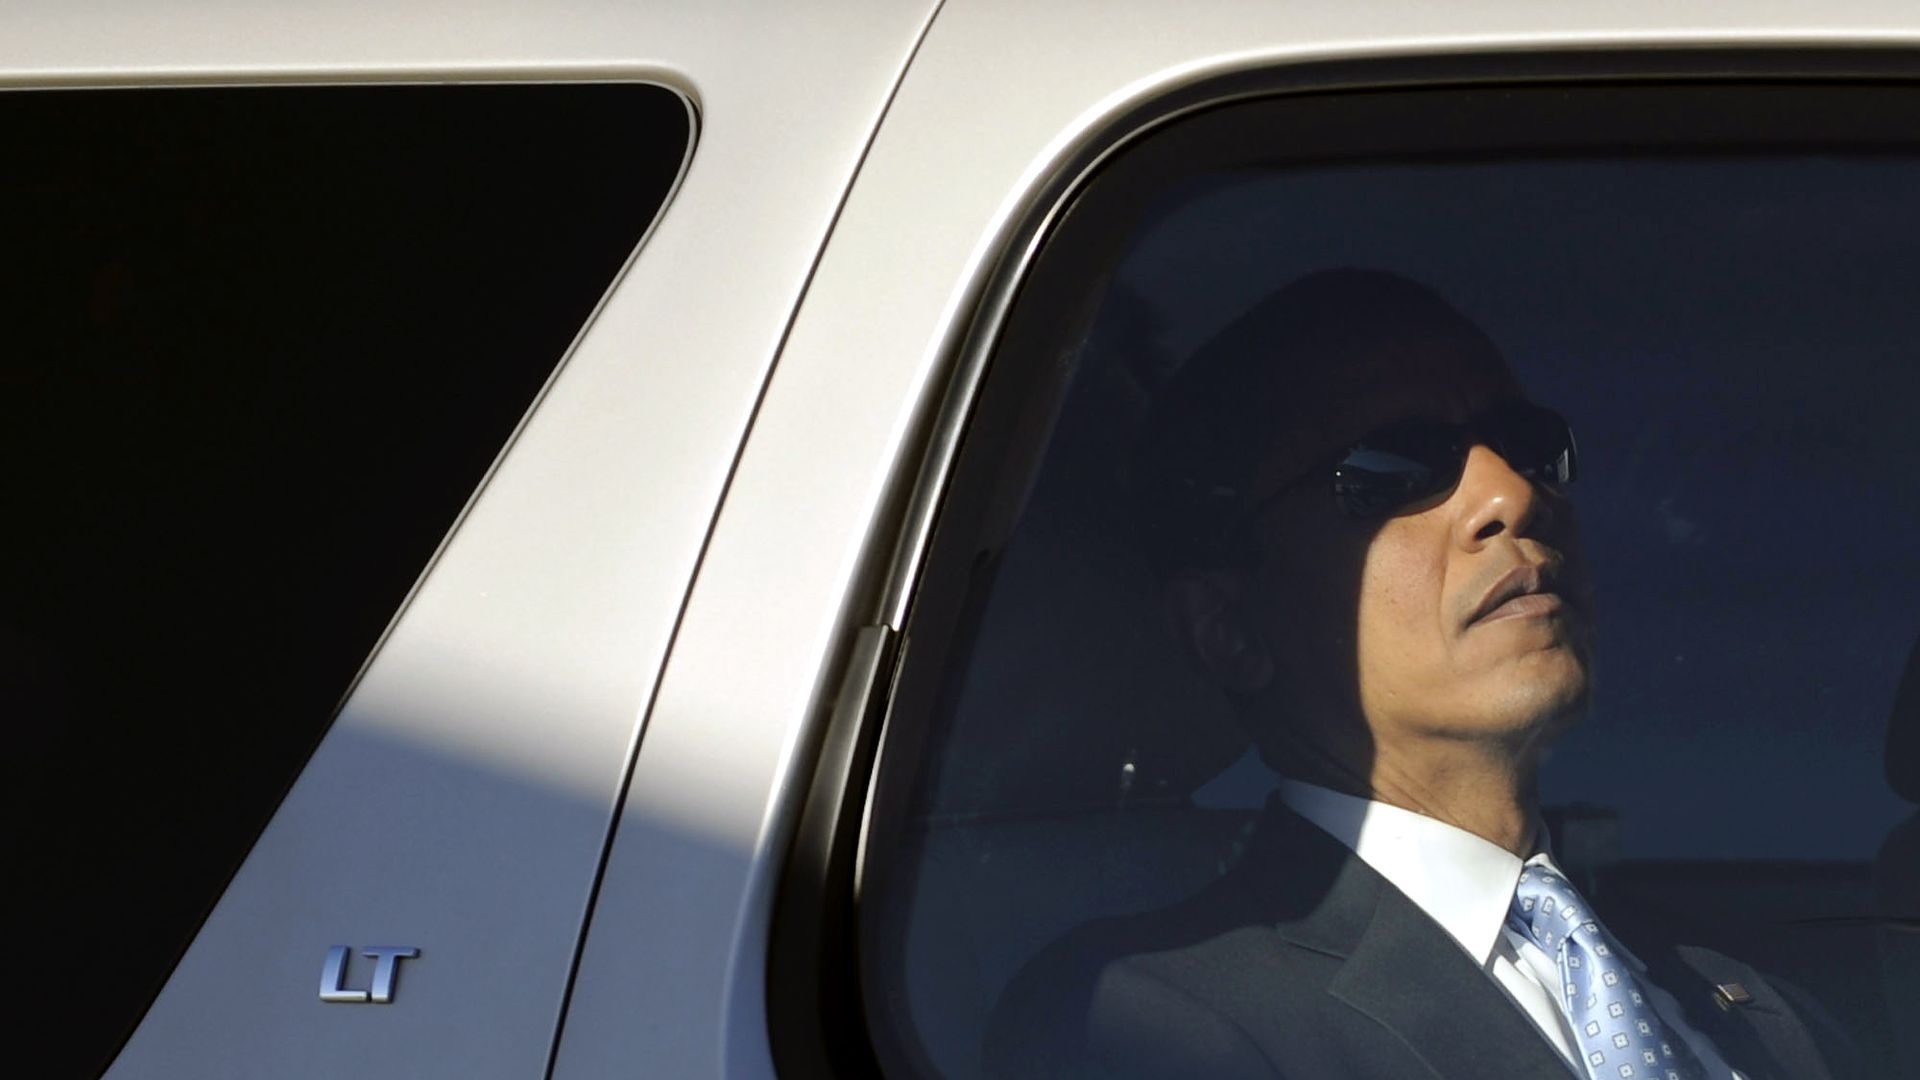 Obama wears sunglasses in the back seat of a car